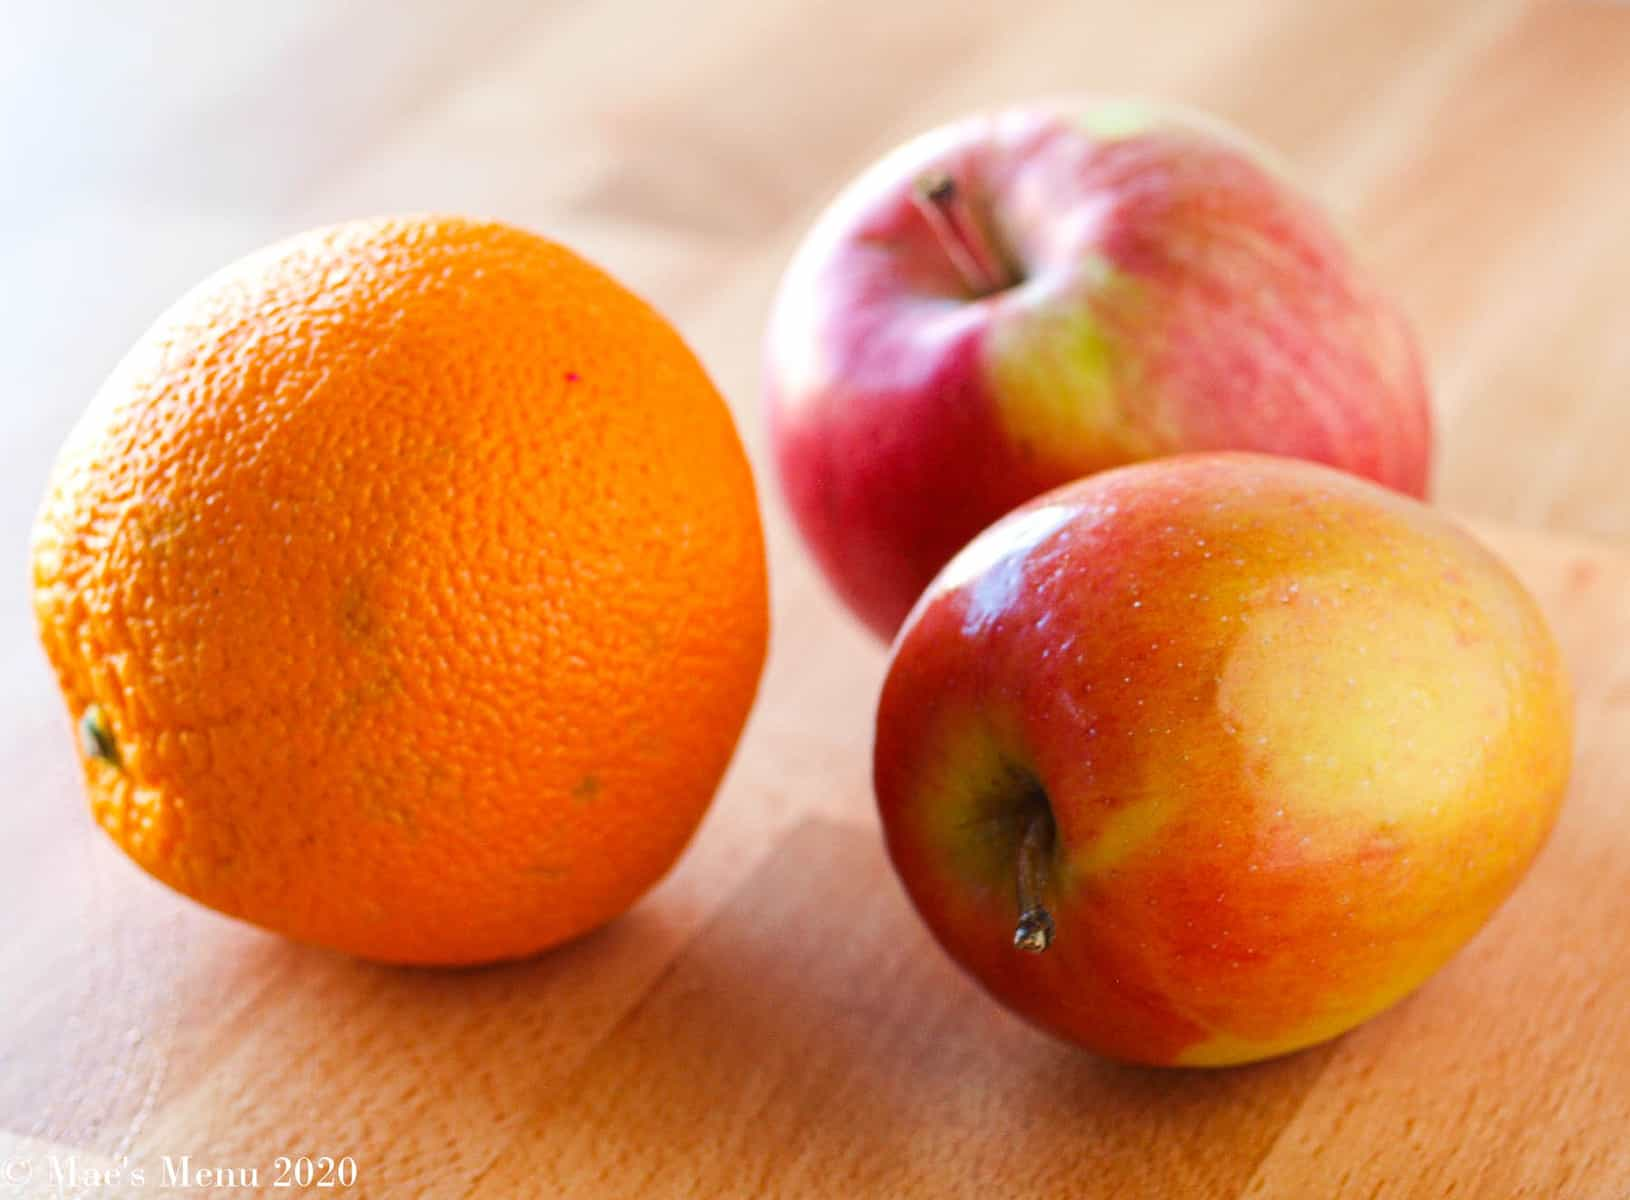 Two red apples and an orange on a butcher block counter